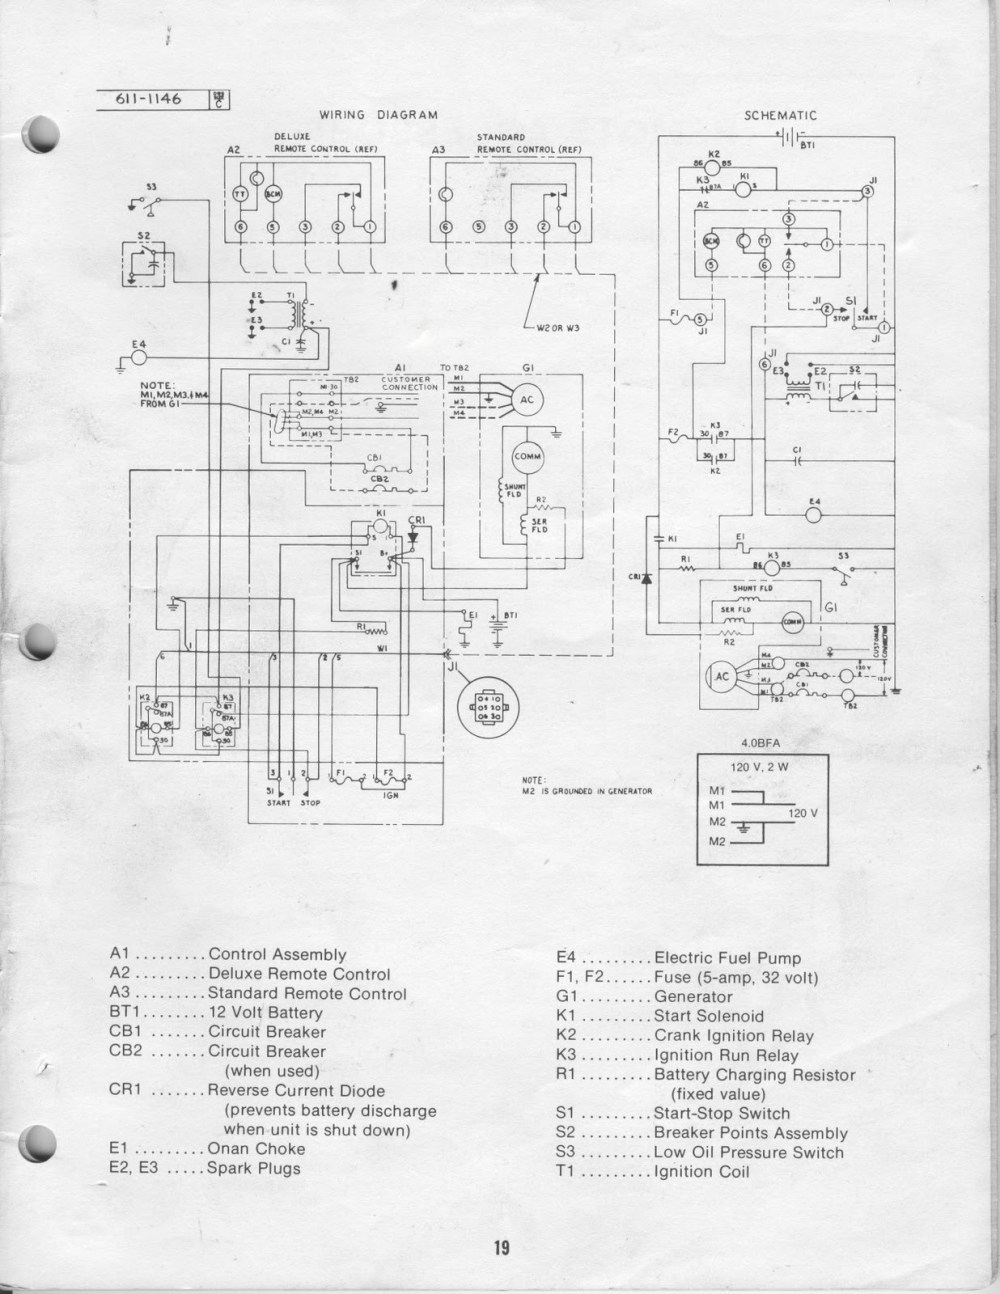 medium resolution of wiring diagram for 4500 bgd onan generator wiring diagrams schematics 6000 onan rv generator wiring diagram